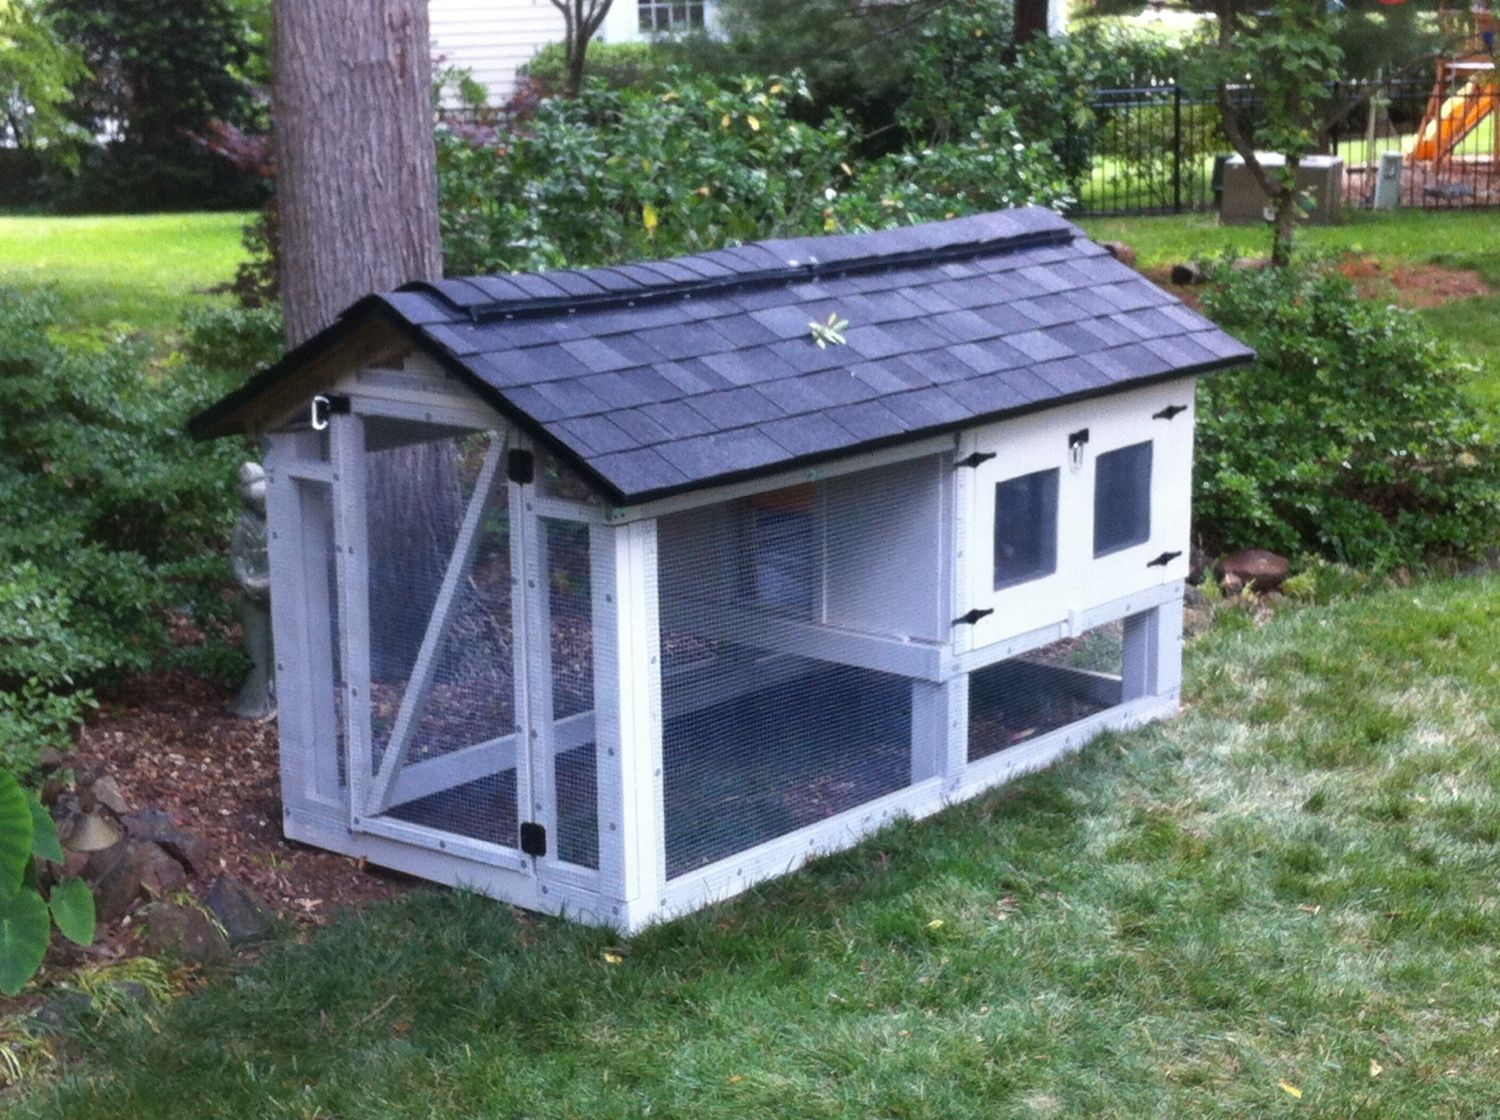 Ventilation For Chicken Houses : Building my coop and carpenter is confusing me about